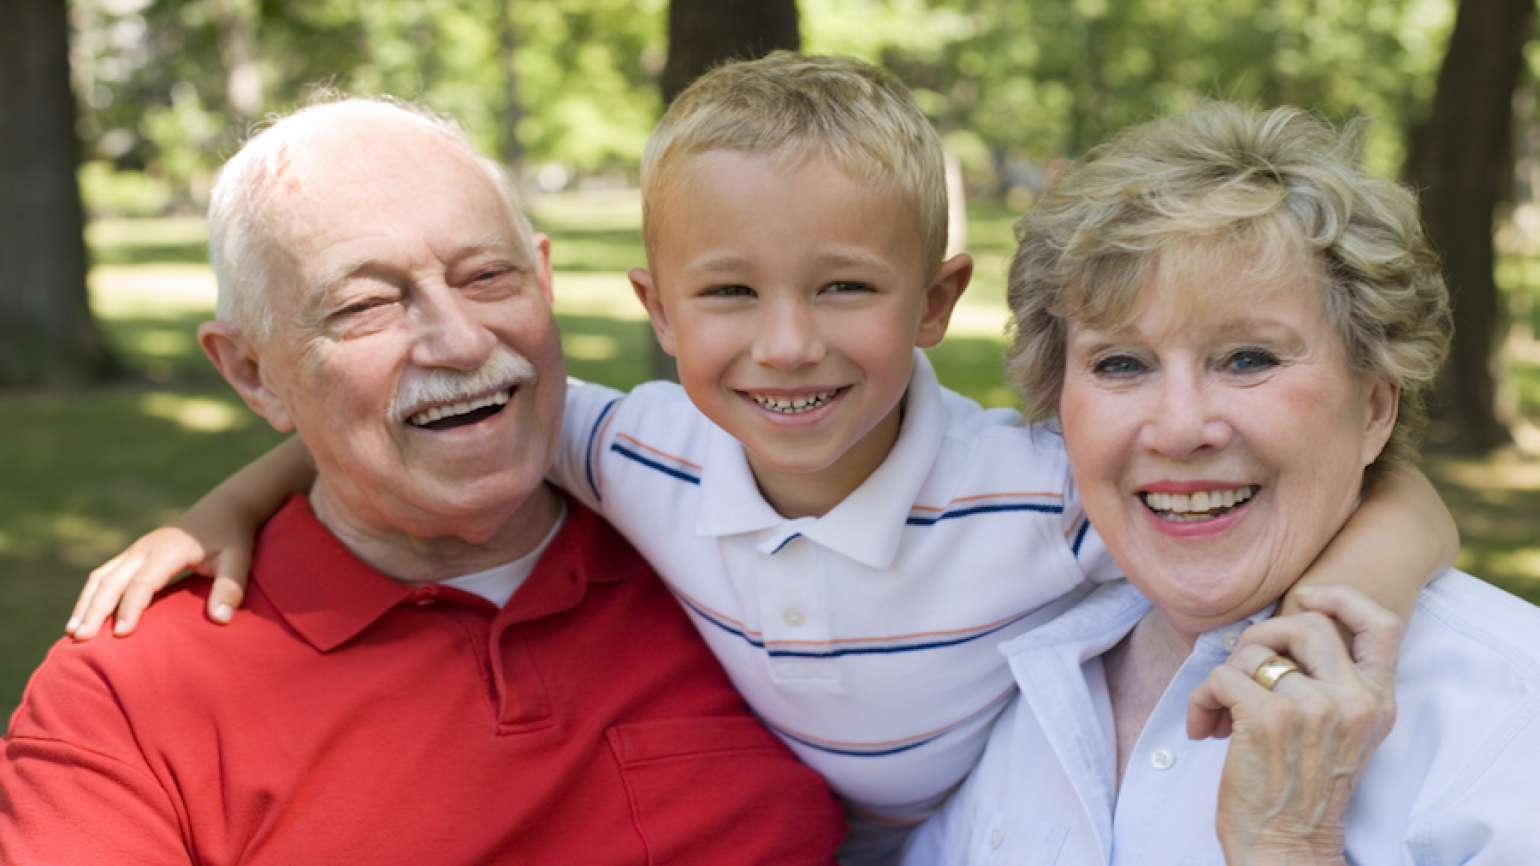 What is Grandparents Day? Find out the meaning of Grandparents Day